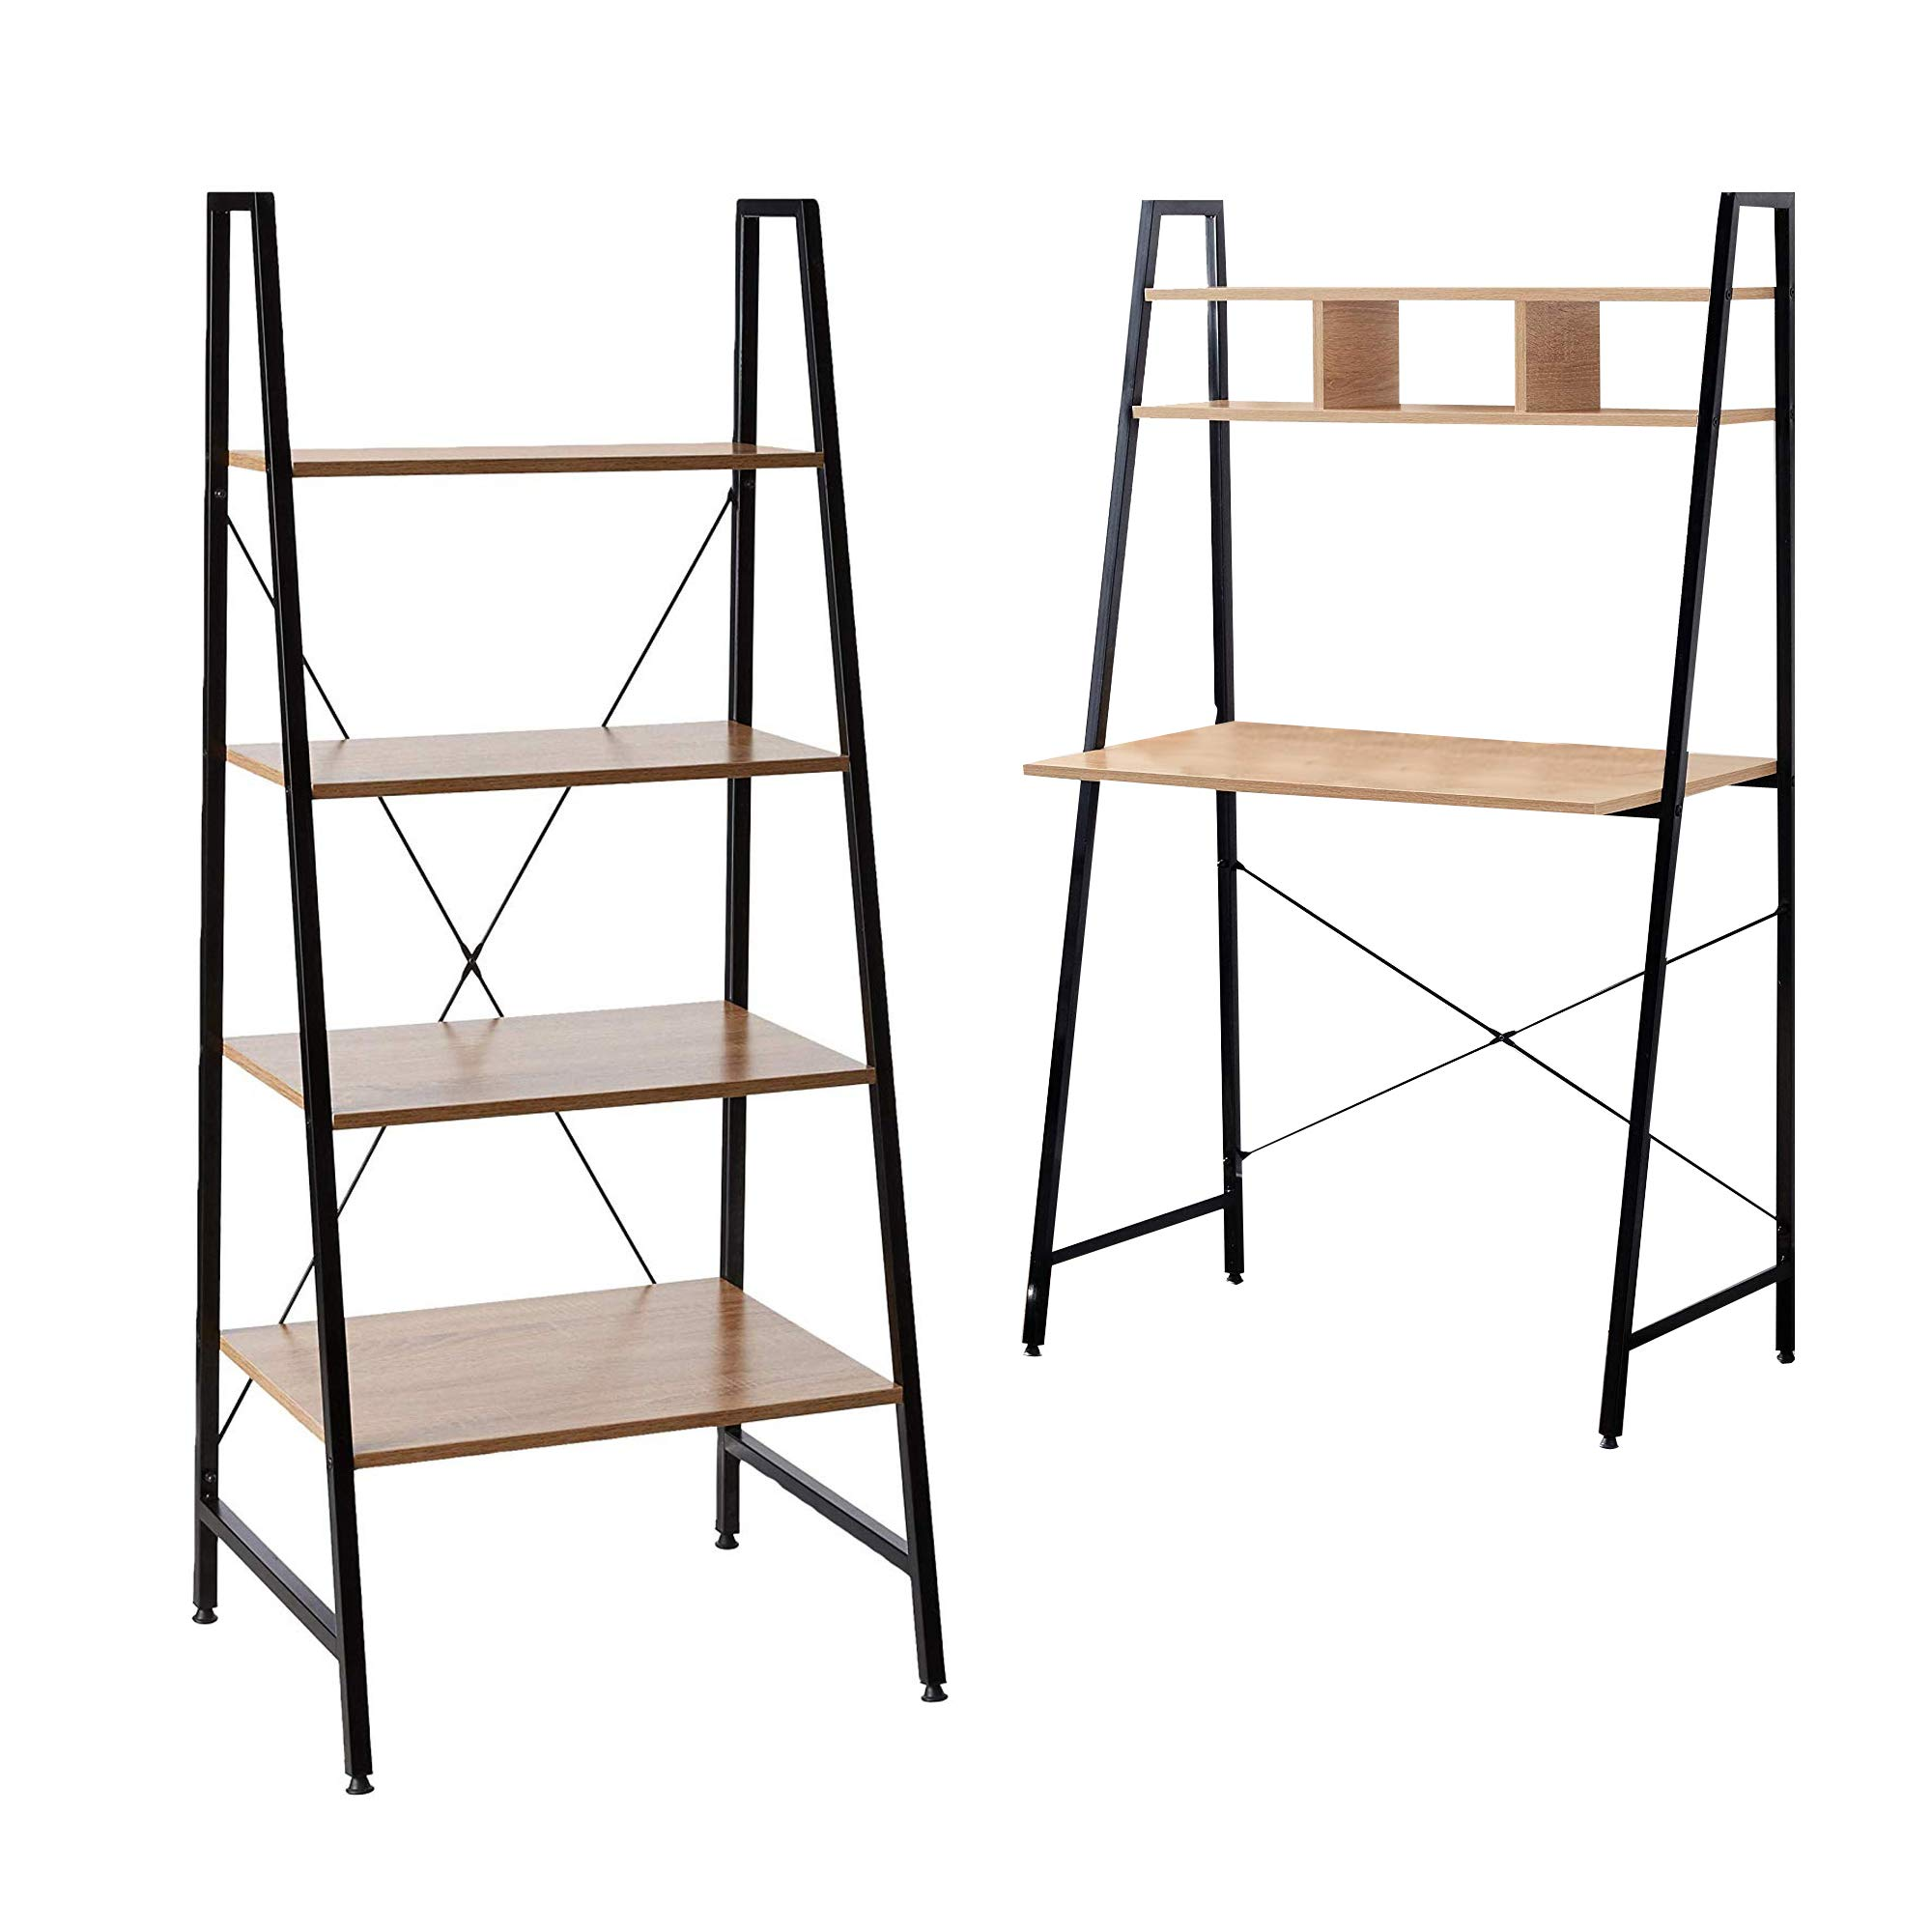 Offex Combo Pack - Black Steel Frame Ladder Style Wooden Desk with 4 Shelf Bookcase by Offex